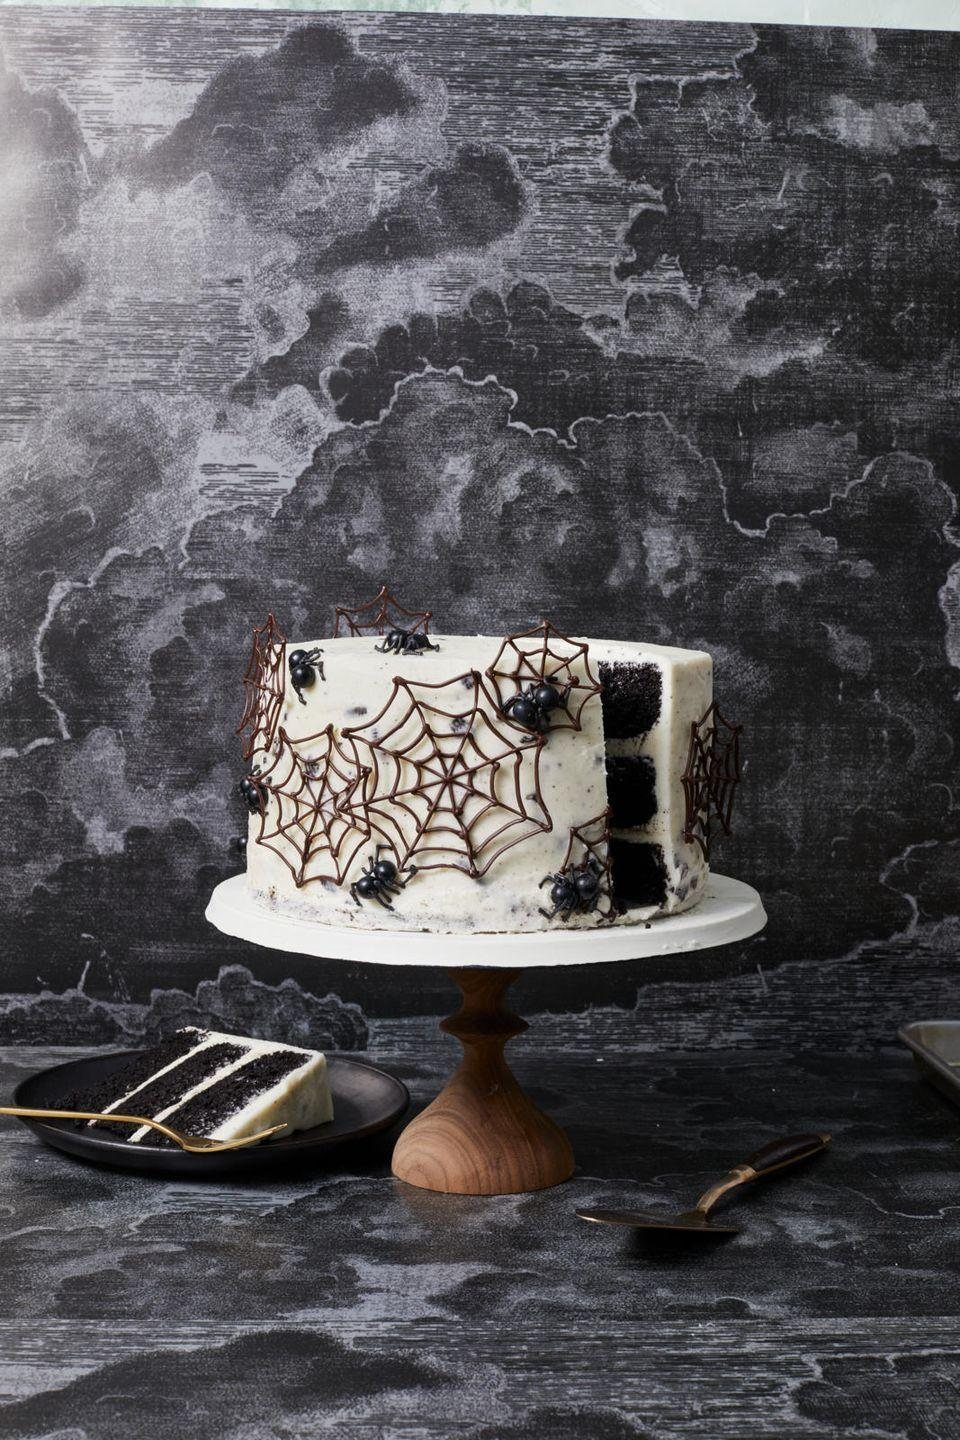 """<p>If you dare… try black cocoa powder for this spooky surprise-inside sweet with a crushed Oreo cookie frosting.</p><p><em><a href=""""https://www.goodhousekeeping.com/food-recipes/dessert/a33461174/spider-web-cake-recipe/"""" rel=""""nofollow noopener"""" target=""""_blank"""" data-ylk=""""slk:Get the recipe for Spider Web Cake »"""" class=""""link rapid-noclick-resp"""">Get the recipe for Spider Web Cake »</a></em></p>"""